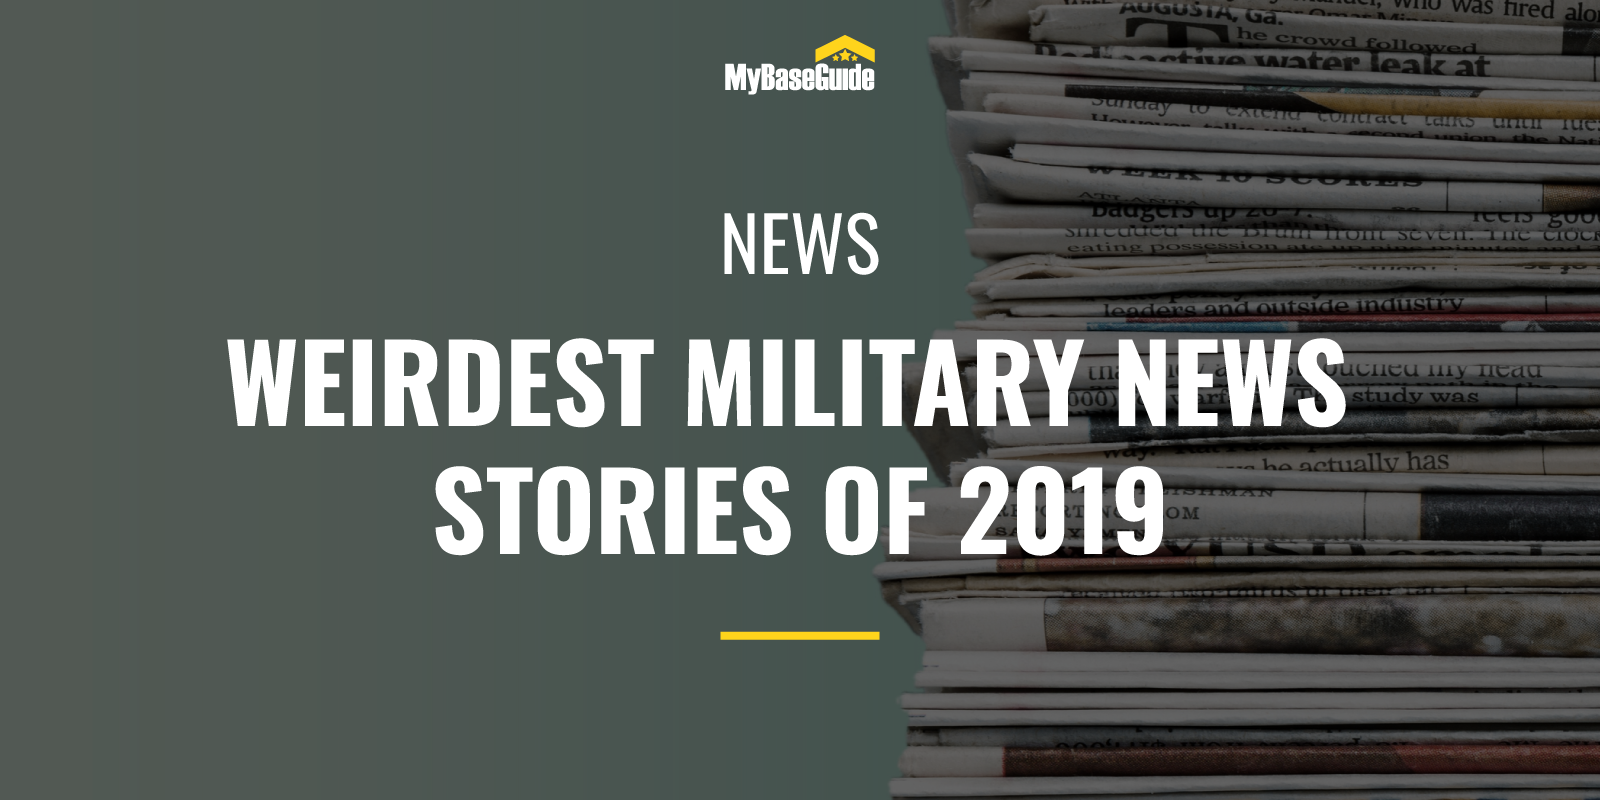 Weirdest Military News Stories of 2019